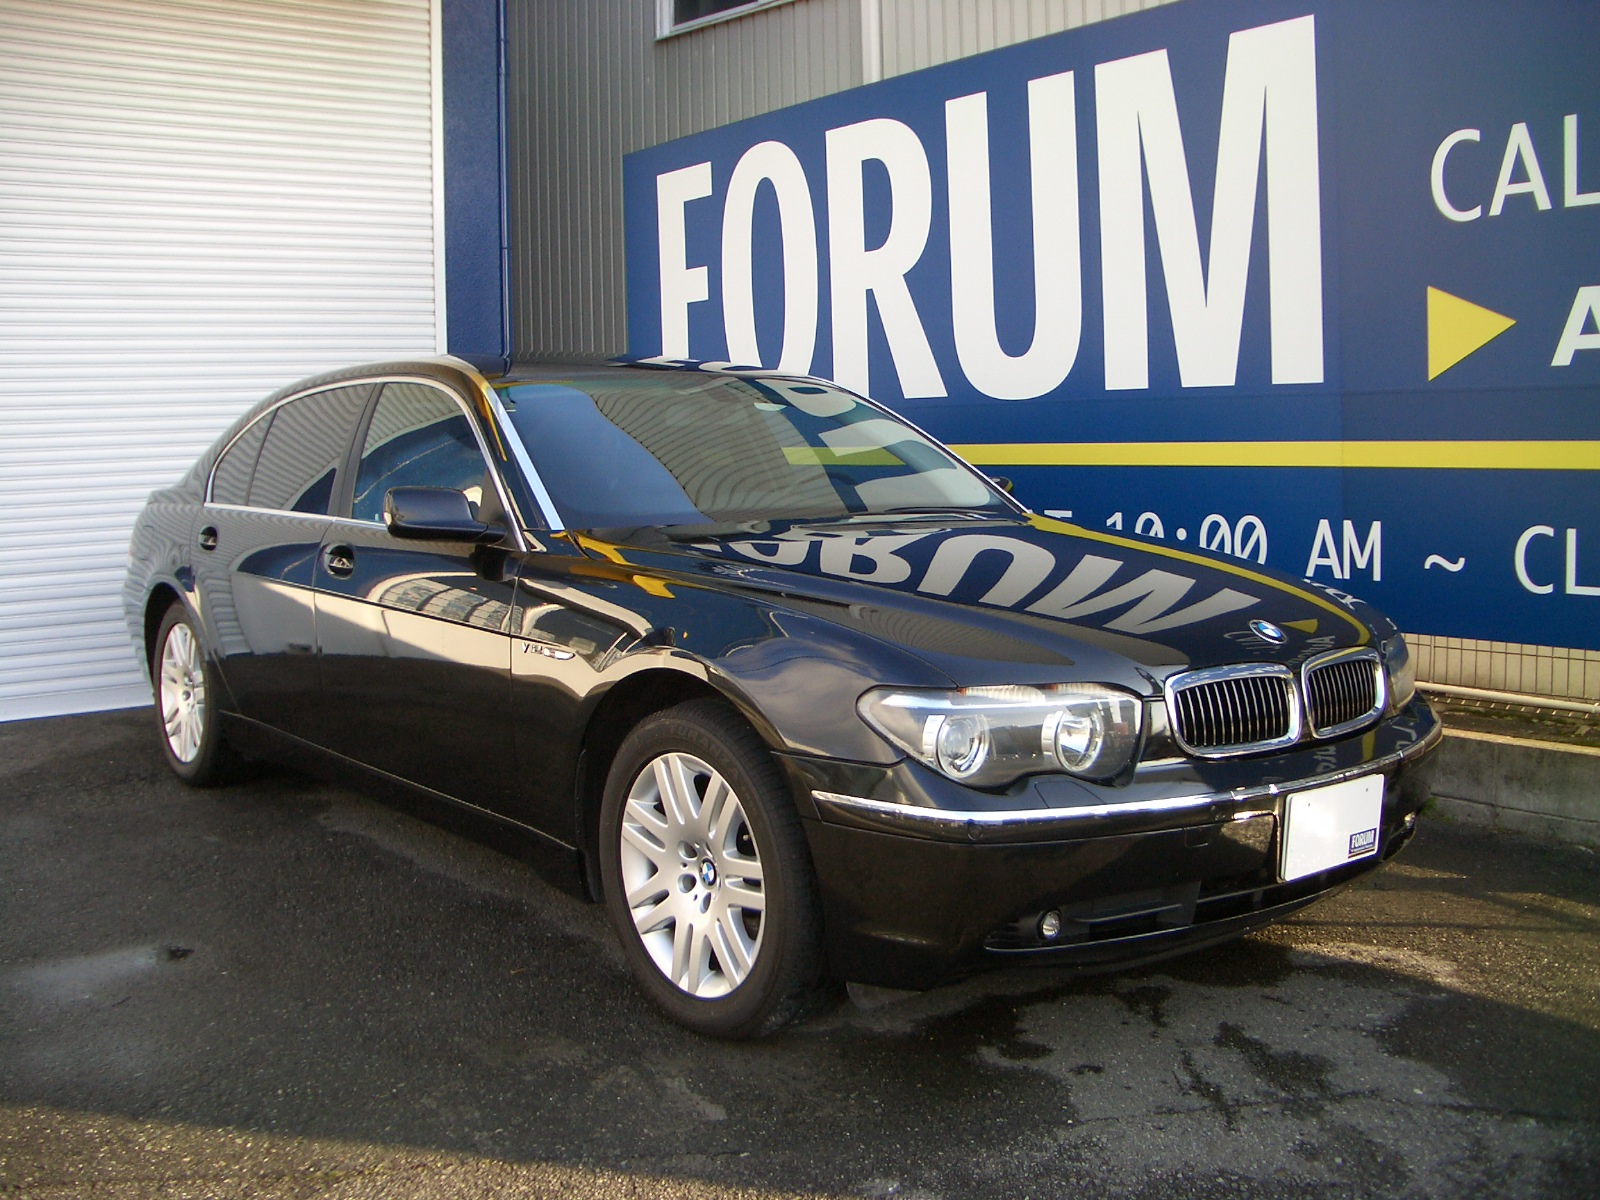 BMW <font size=4 color=red face=Impact>SOLD OUT</font> 745Li